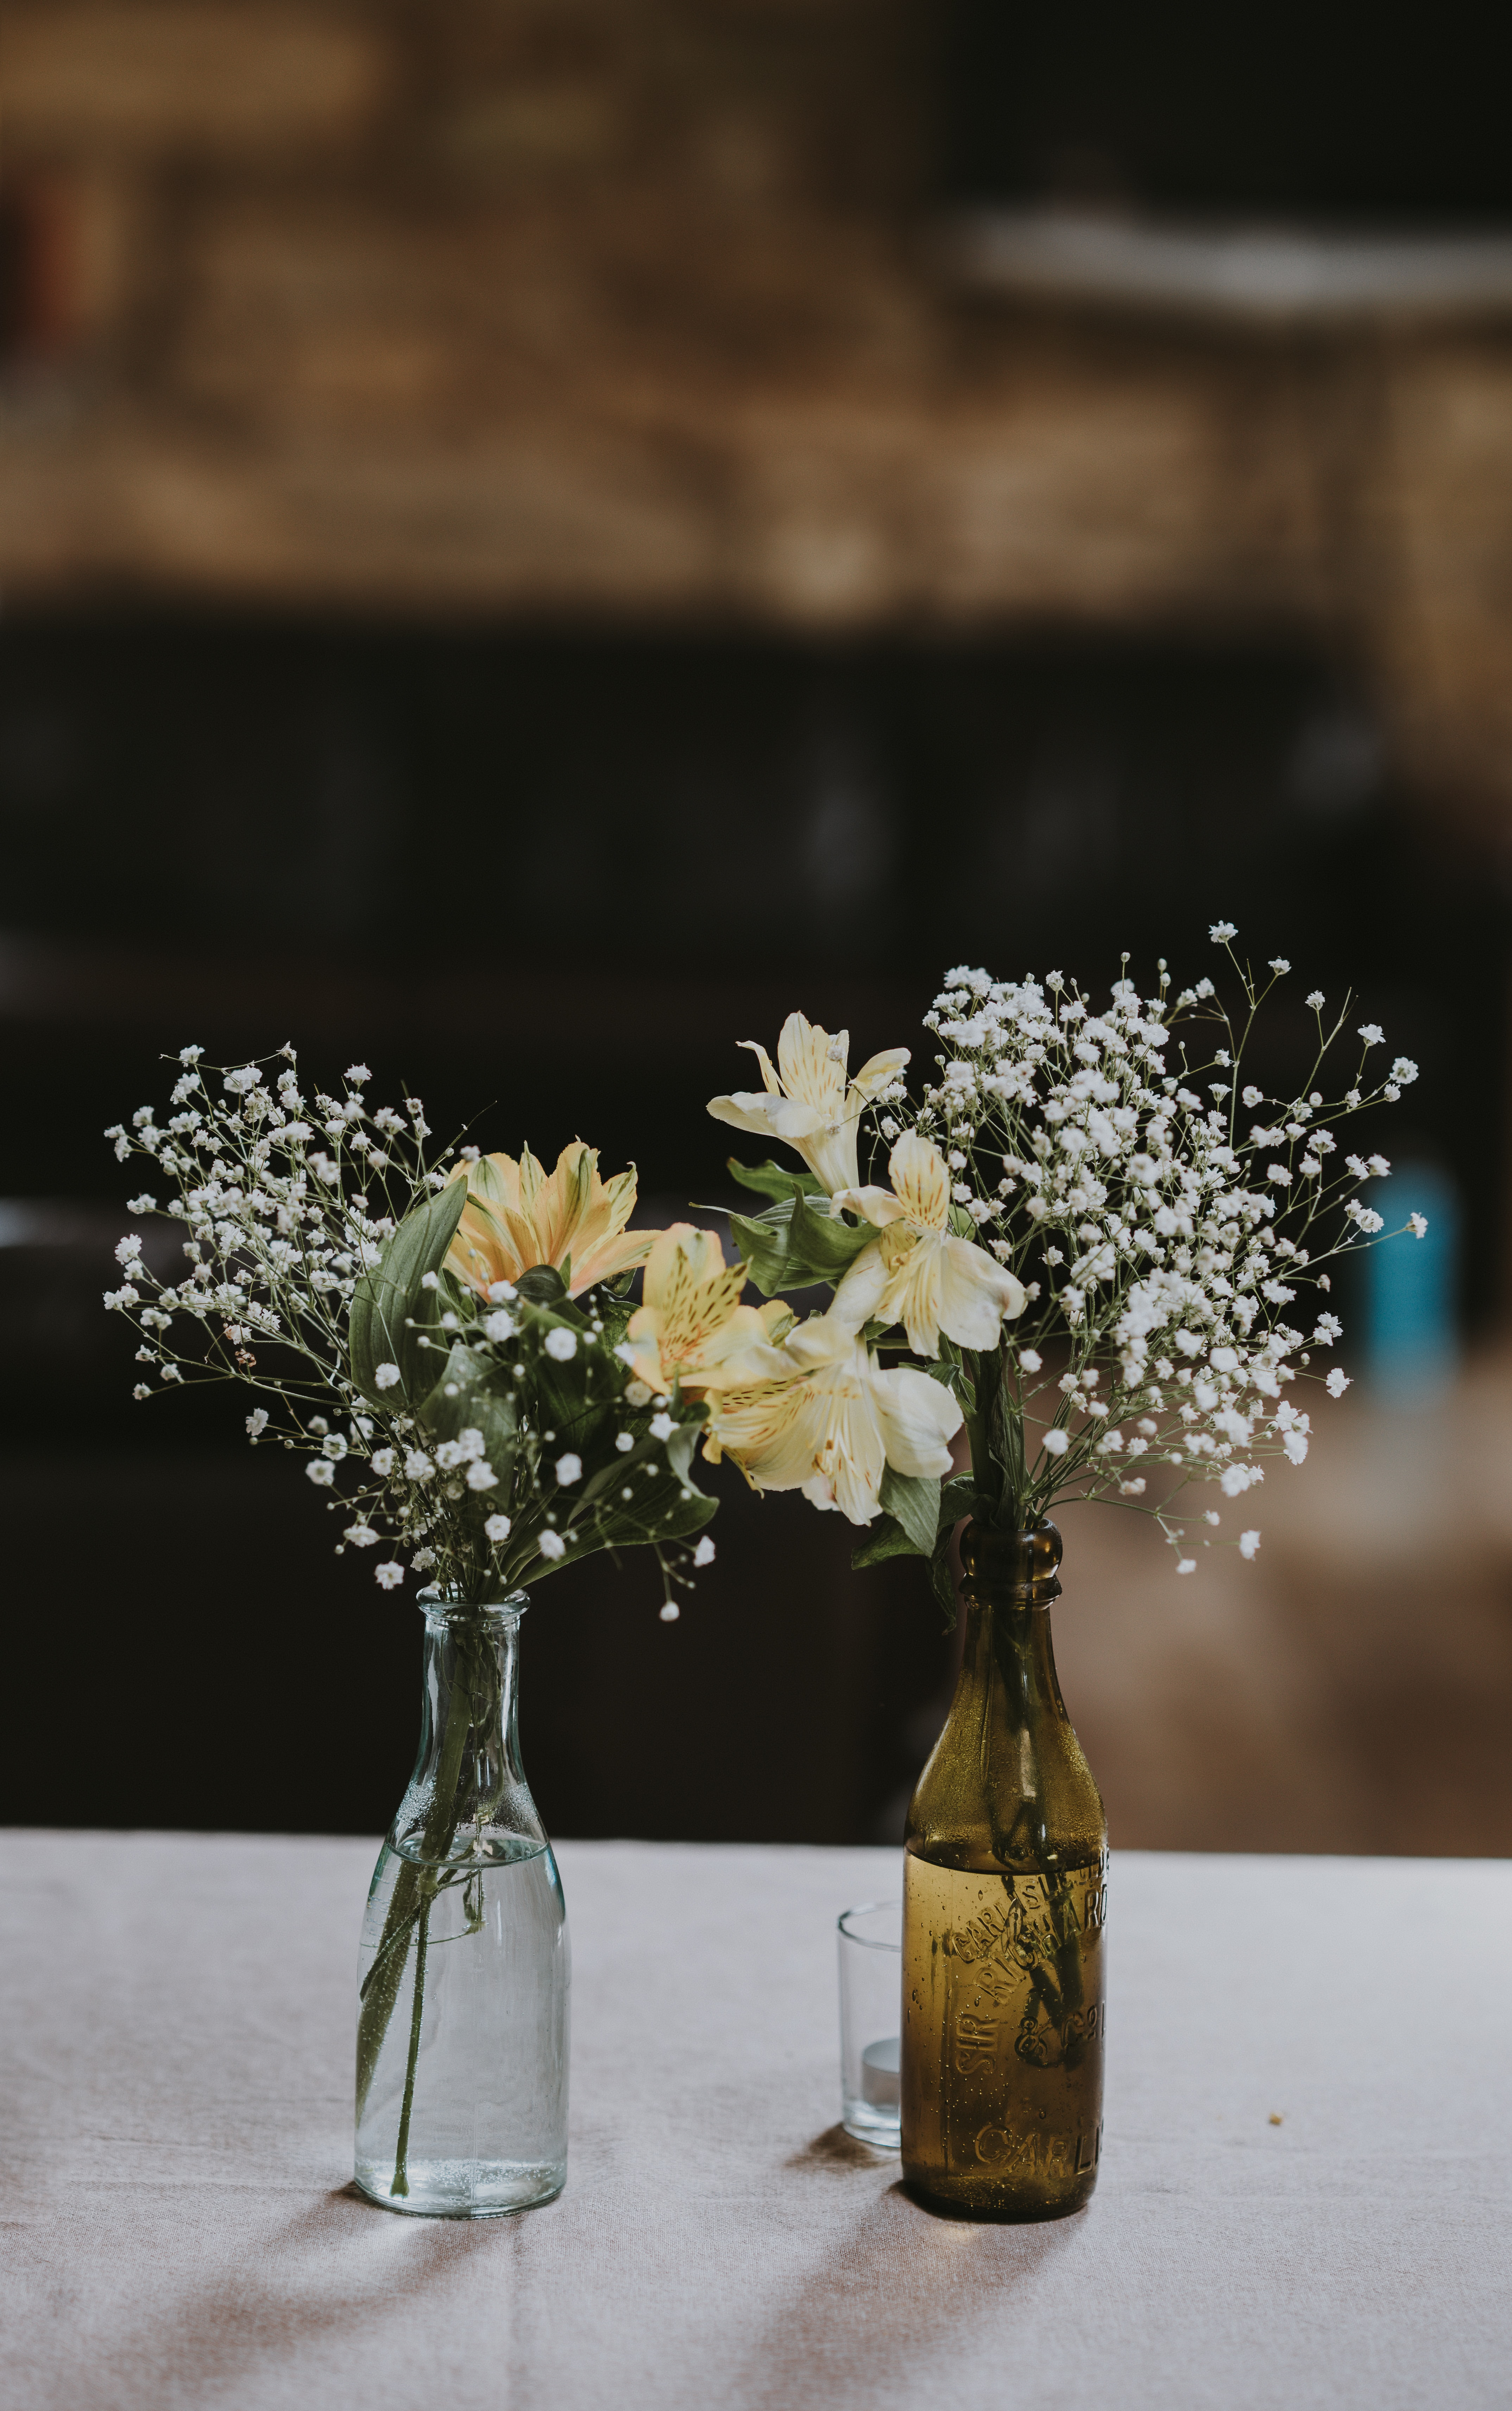 white and yellow flowers on clear glass bottles